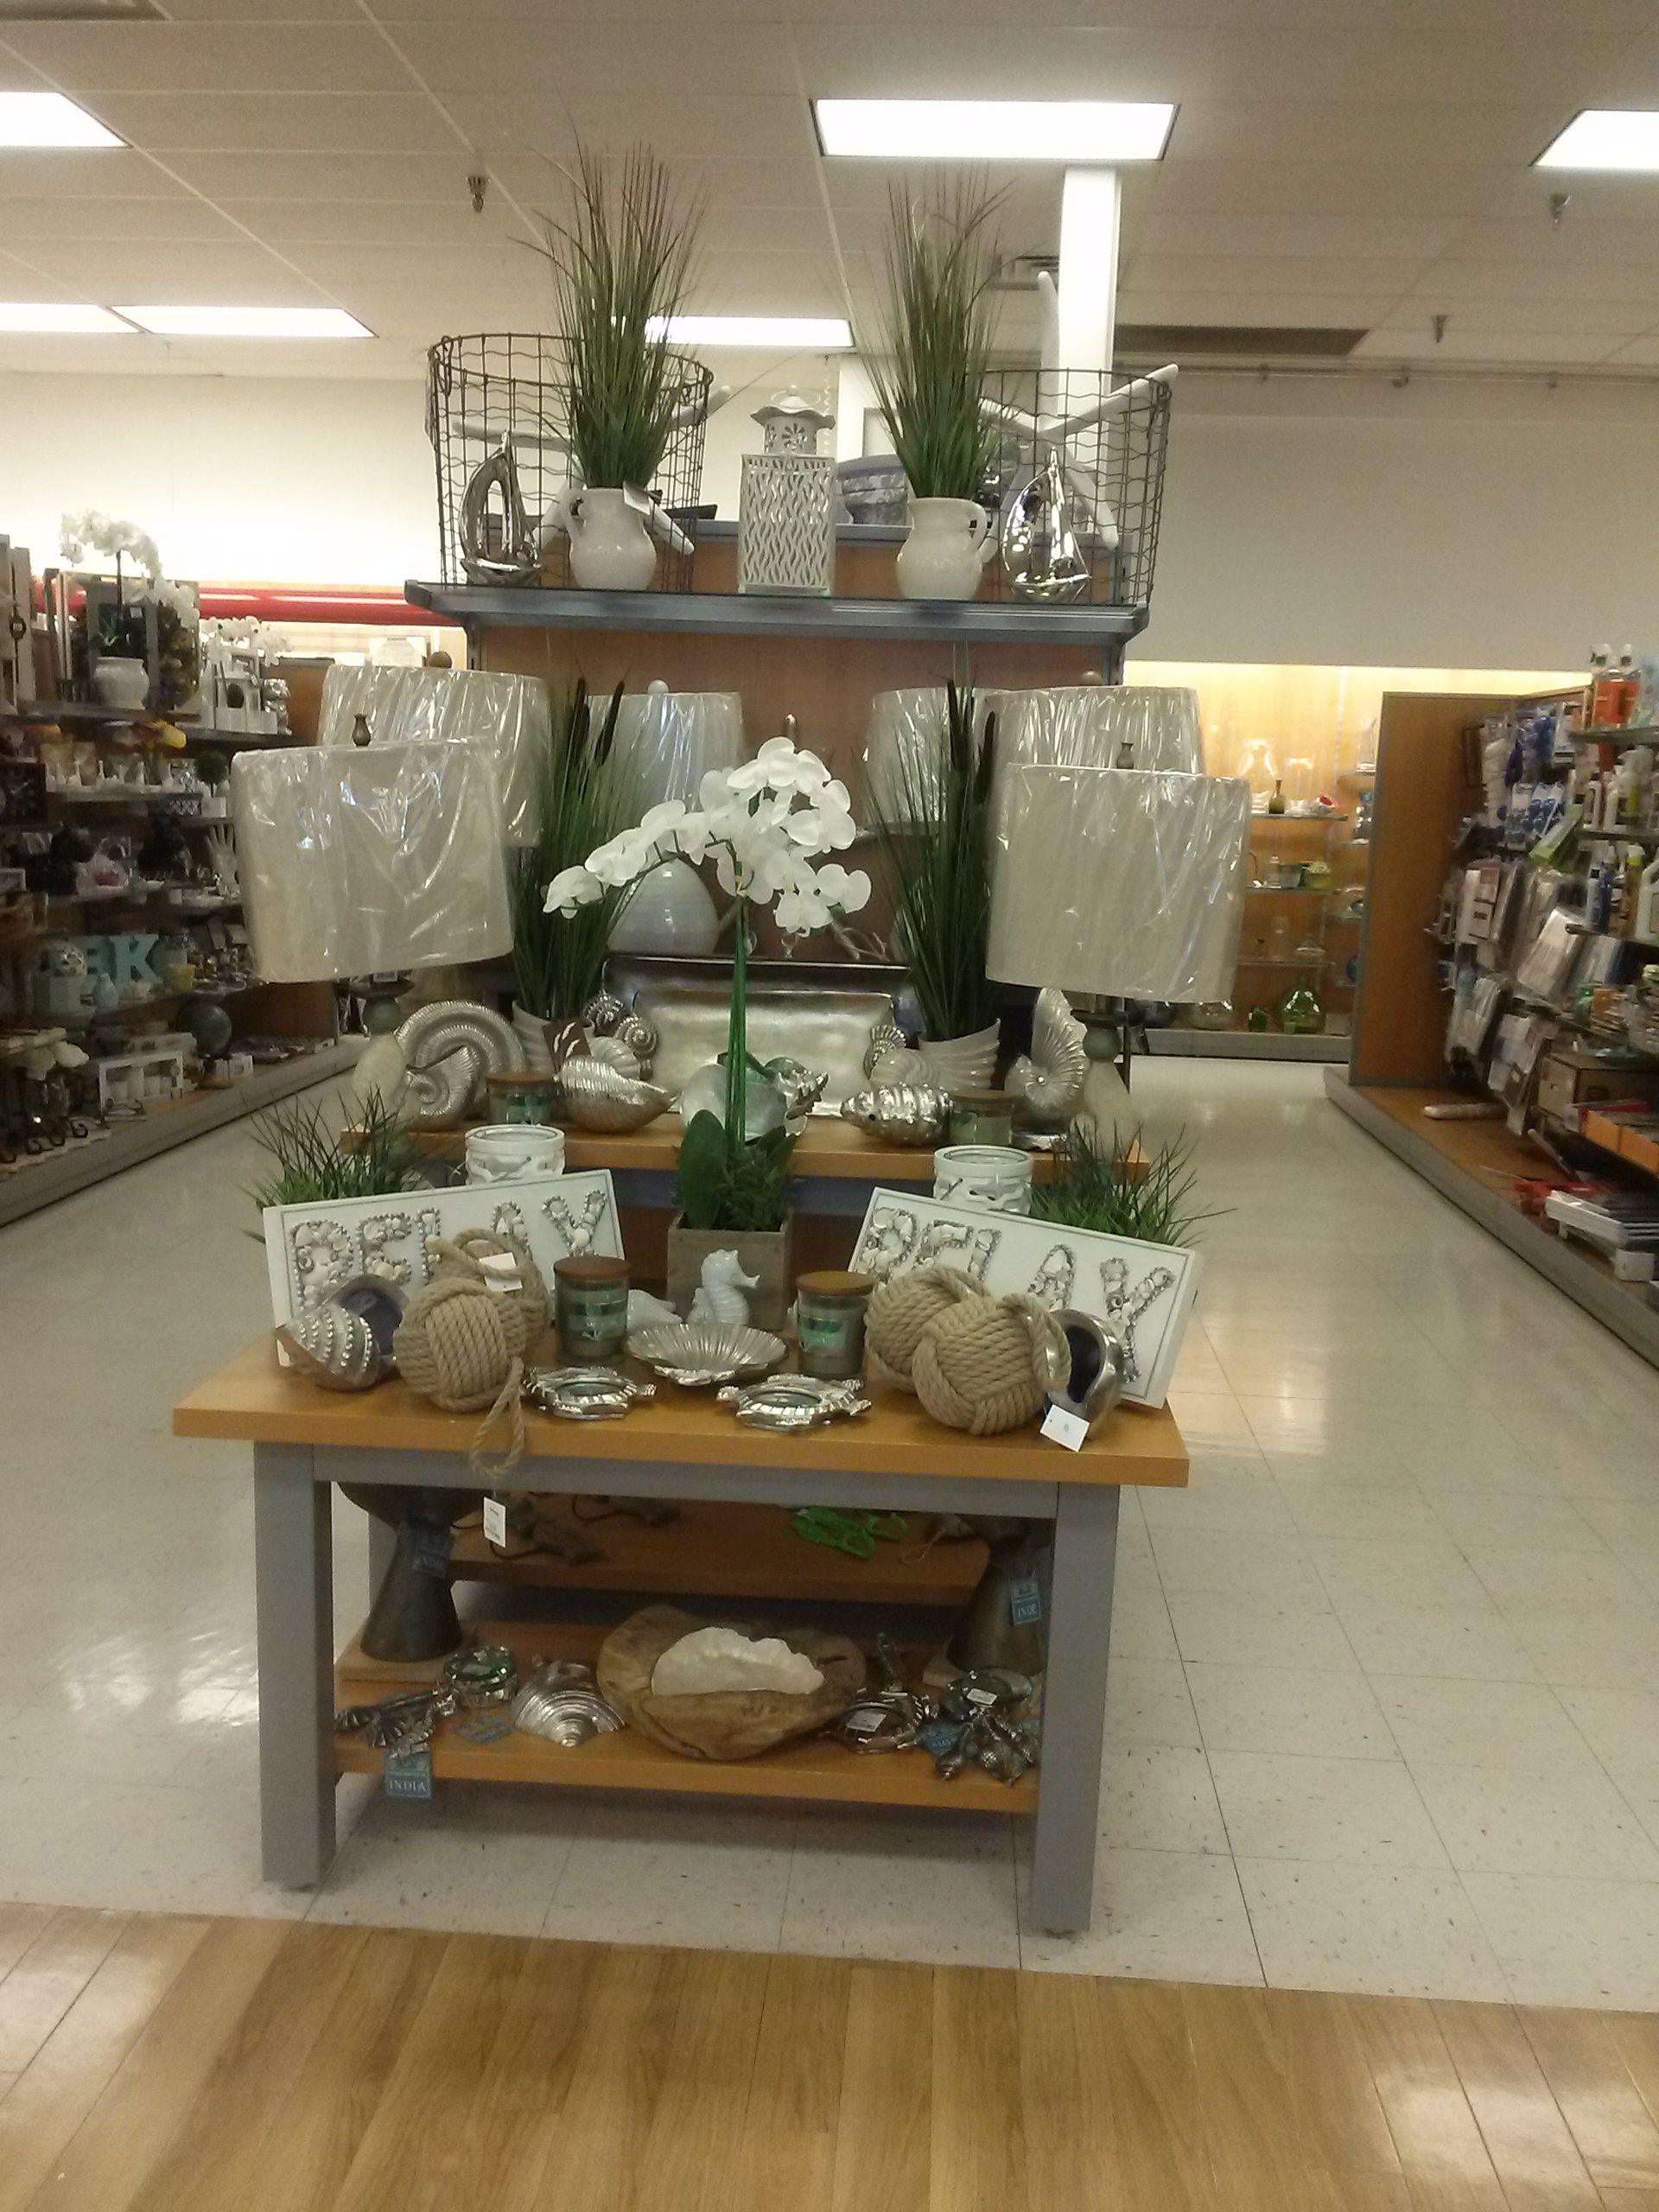 Merchandising display natural beach tj maxx endcap topeka merchandising display natural beach tj maxx endcap topeka geotapseo Choice Image